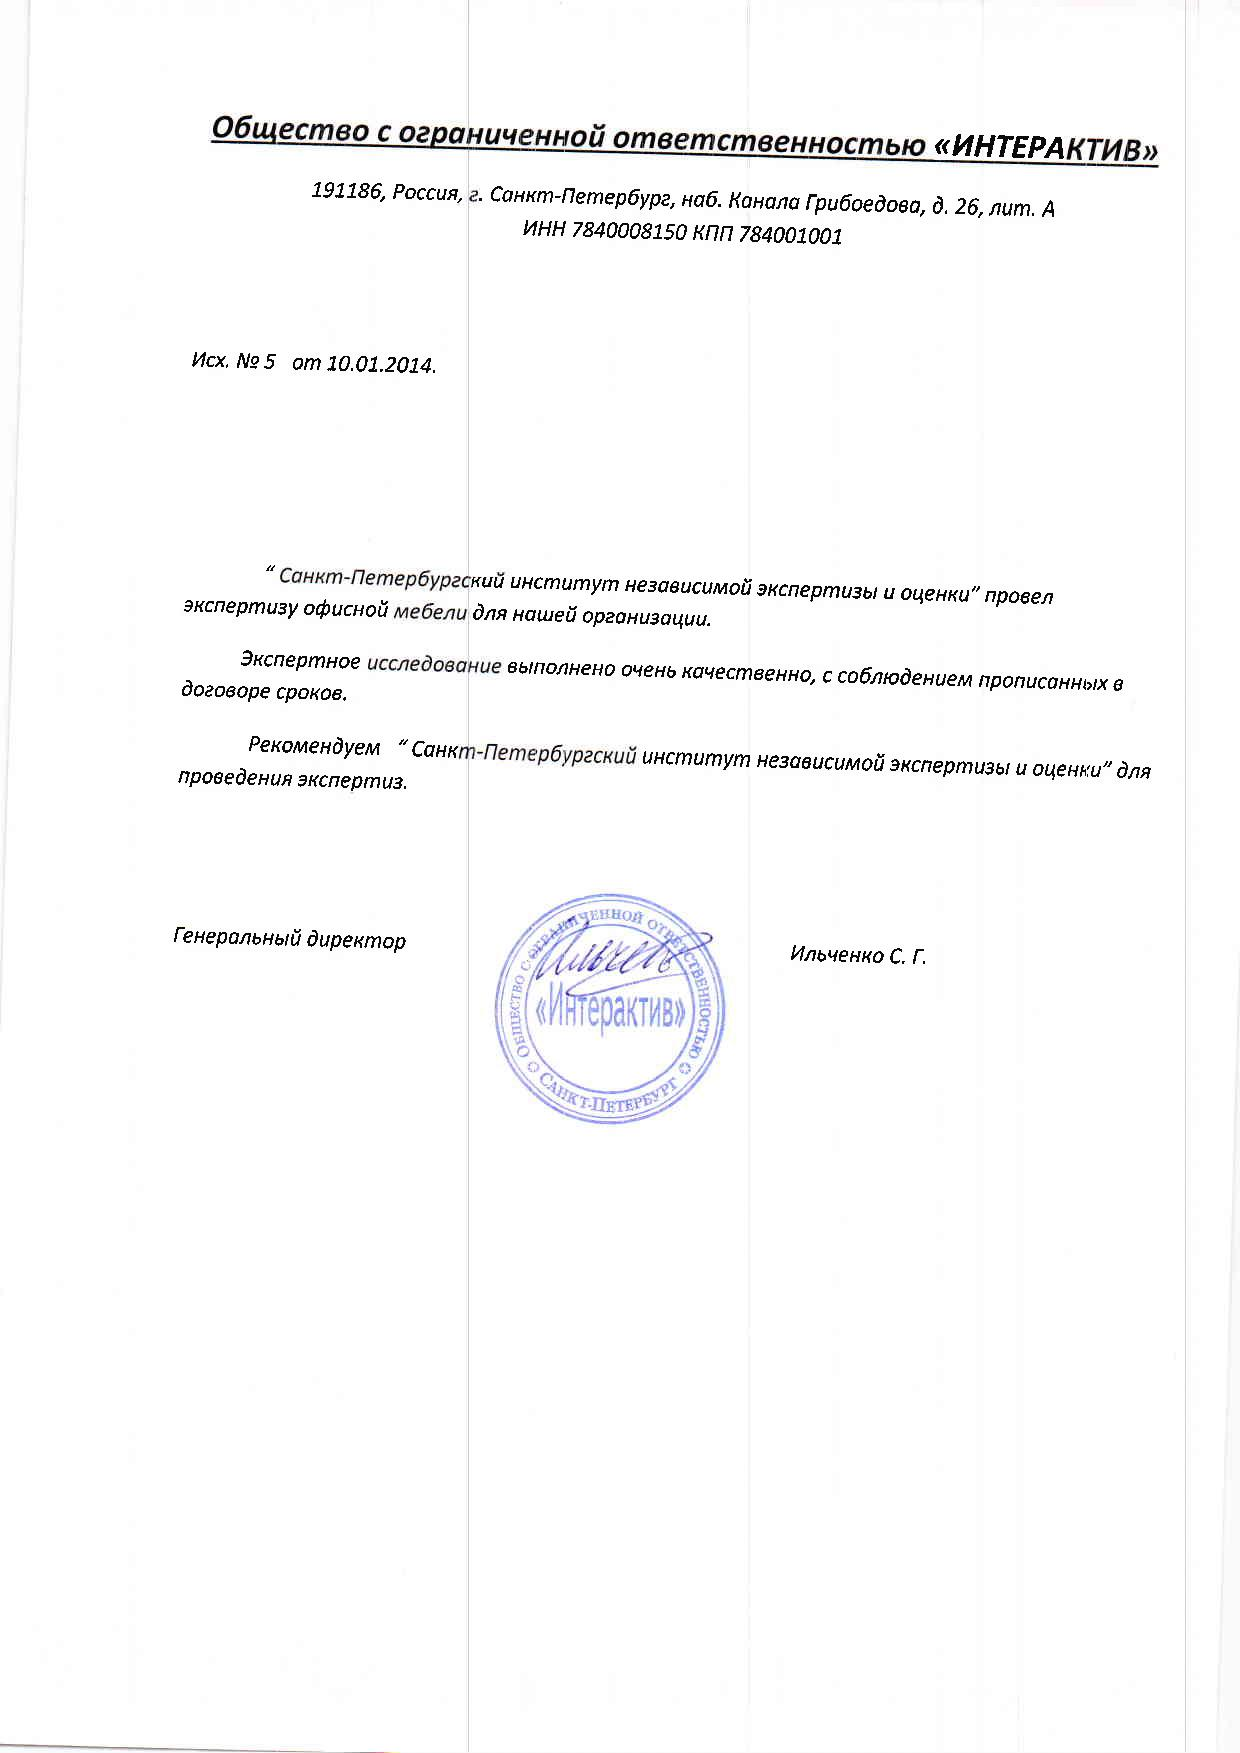 http://inexpert.ru/wp-content/uploads/2014/01/Scan10008-1-page-001.jpg